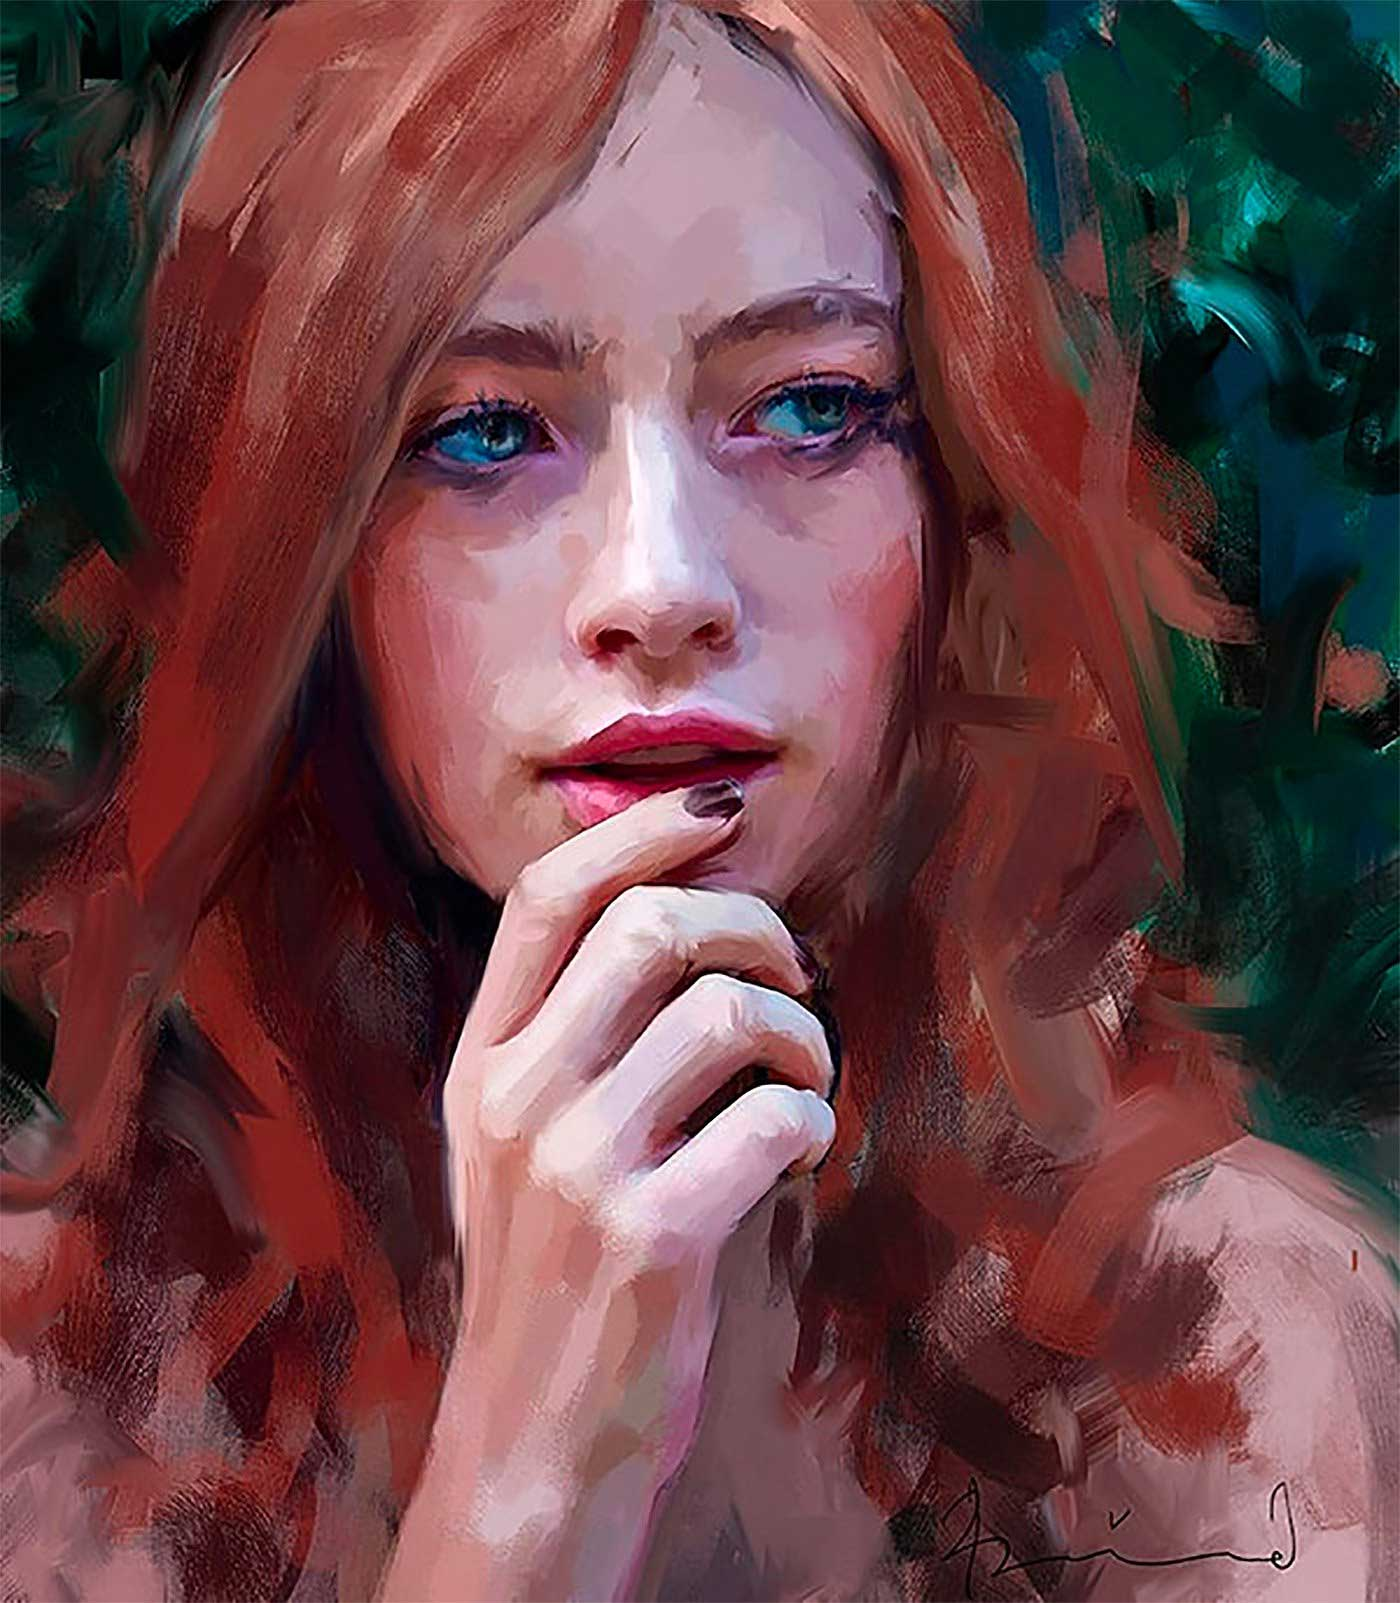 Neue Digital Paintings von Ivana Besevic Ivana-Besevic-digital-paintings-portraits-2018_03